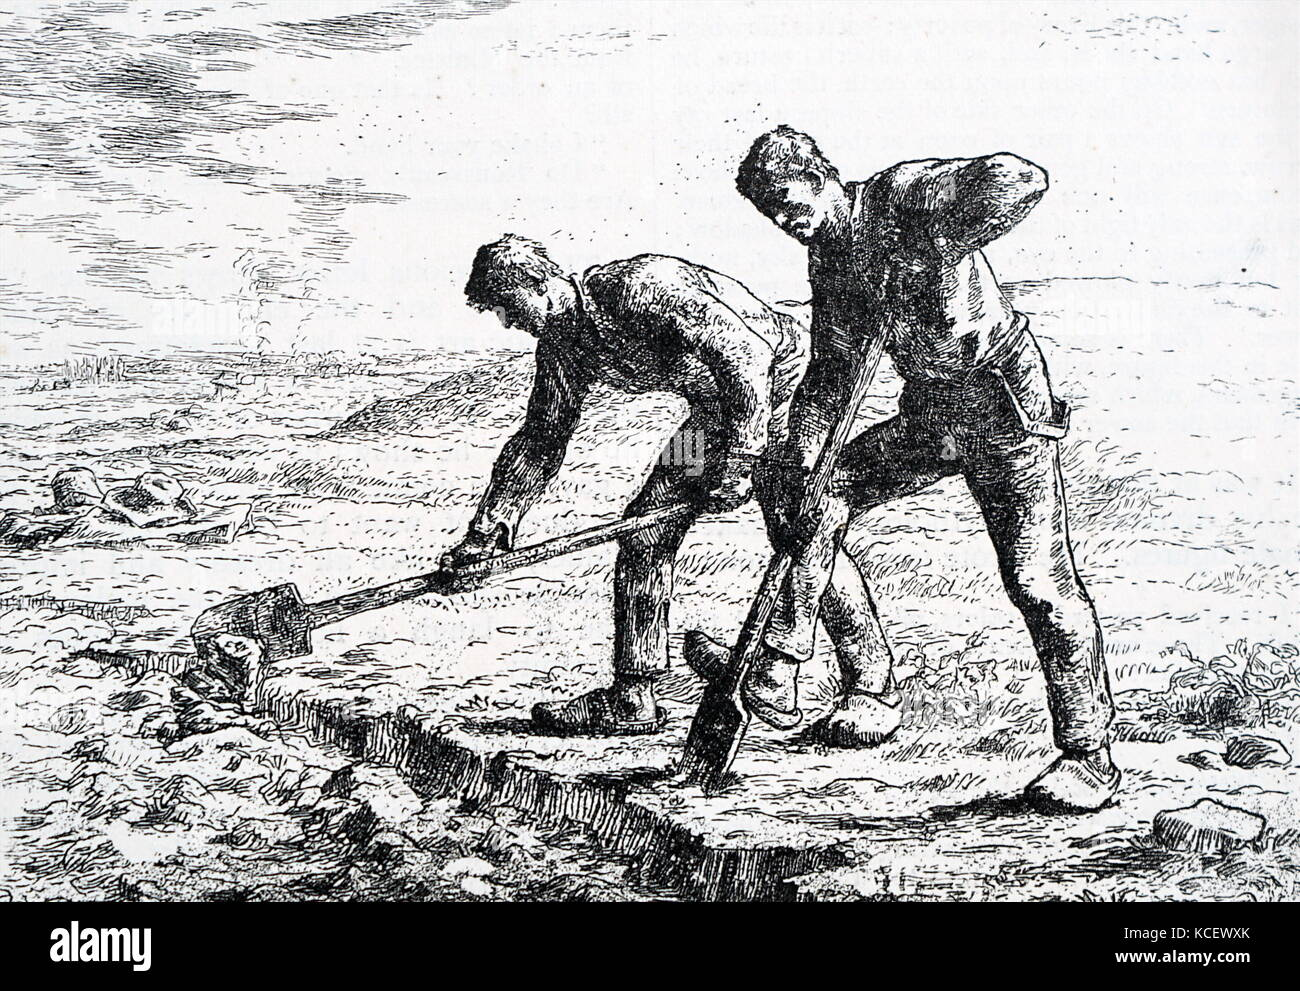 Print of the painting titled 'The Diggers' by Jean-François Millet (1814-1875) a French painter and - Stock Image